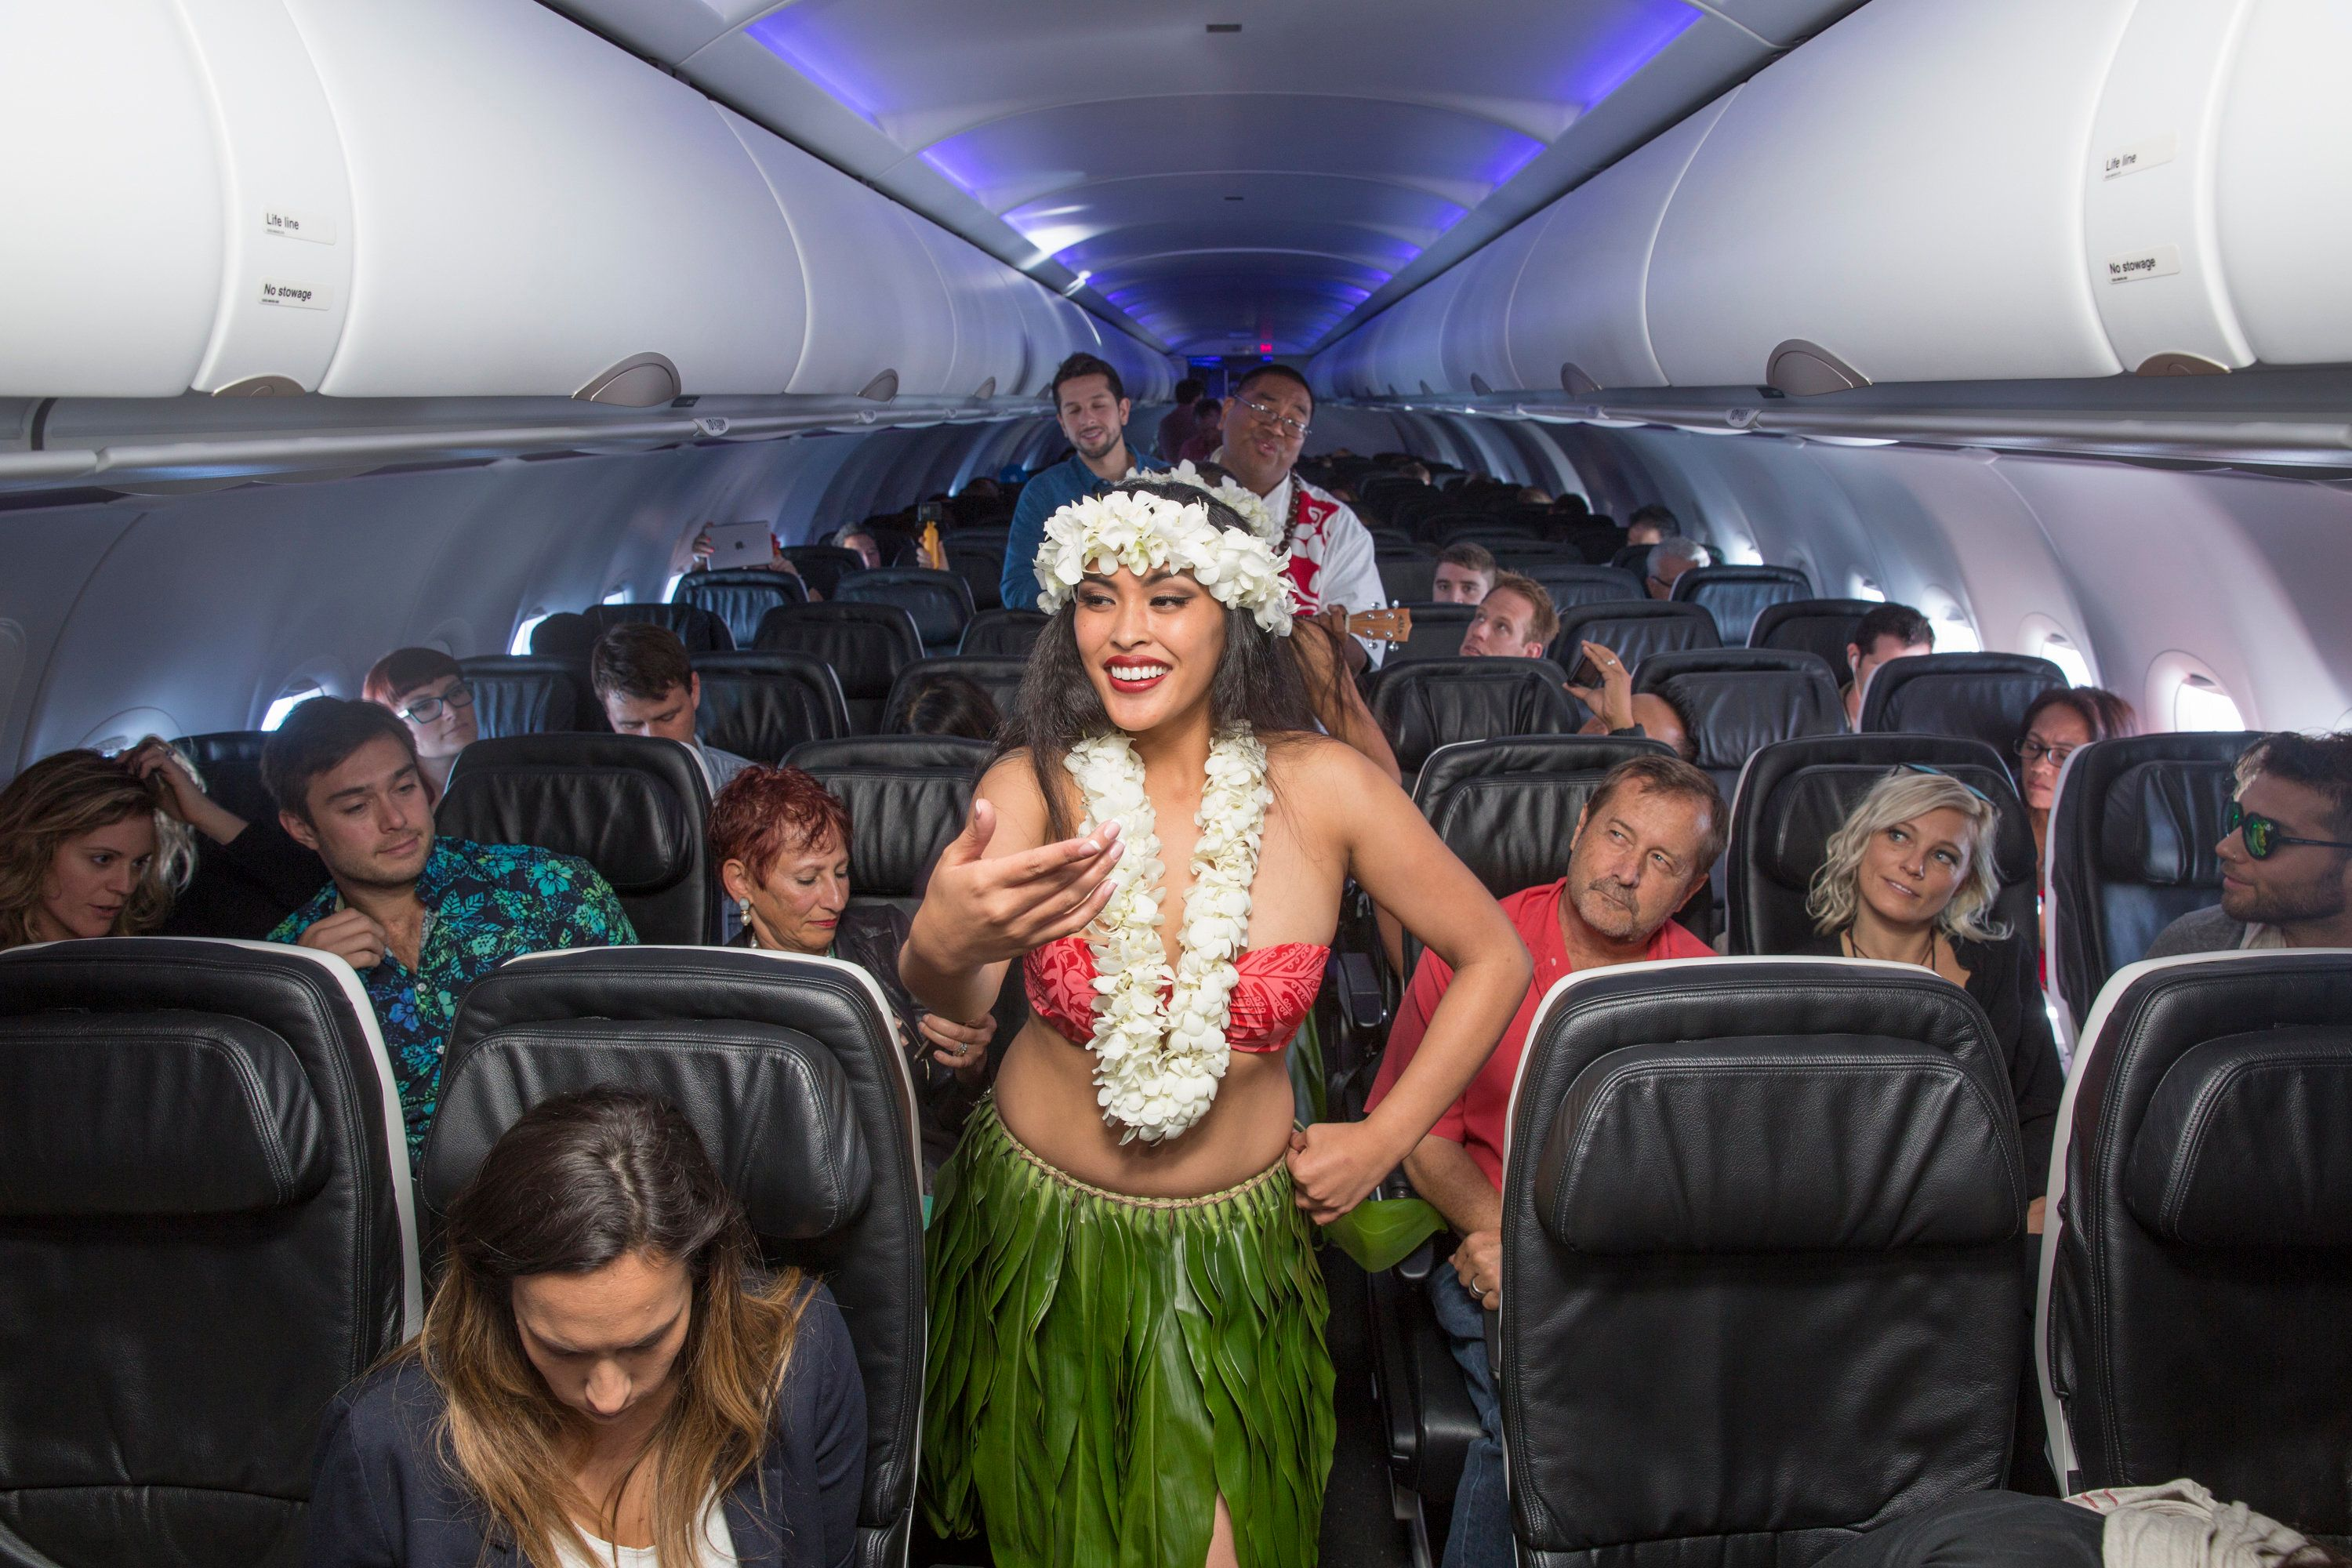 SAN FRANCISCO, CA - NOVEMBER 02:  Atmosphere during Virgin America and Airbnb Hawaii Launch Party on November 2, 2015 in San Francisco, California.  (Photo by Alison Buck/Getty Images)